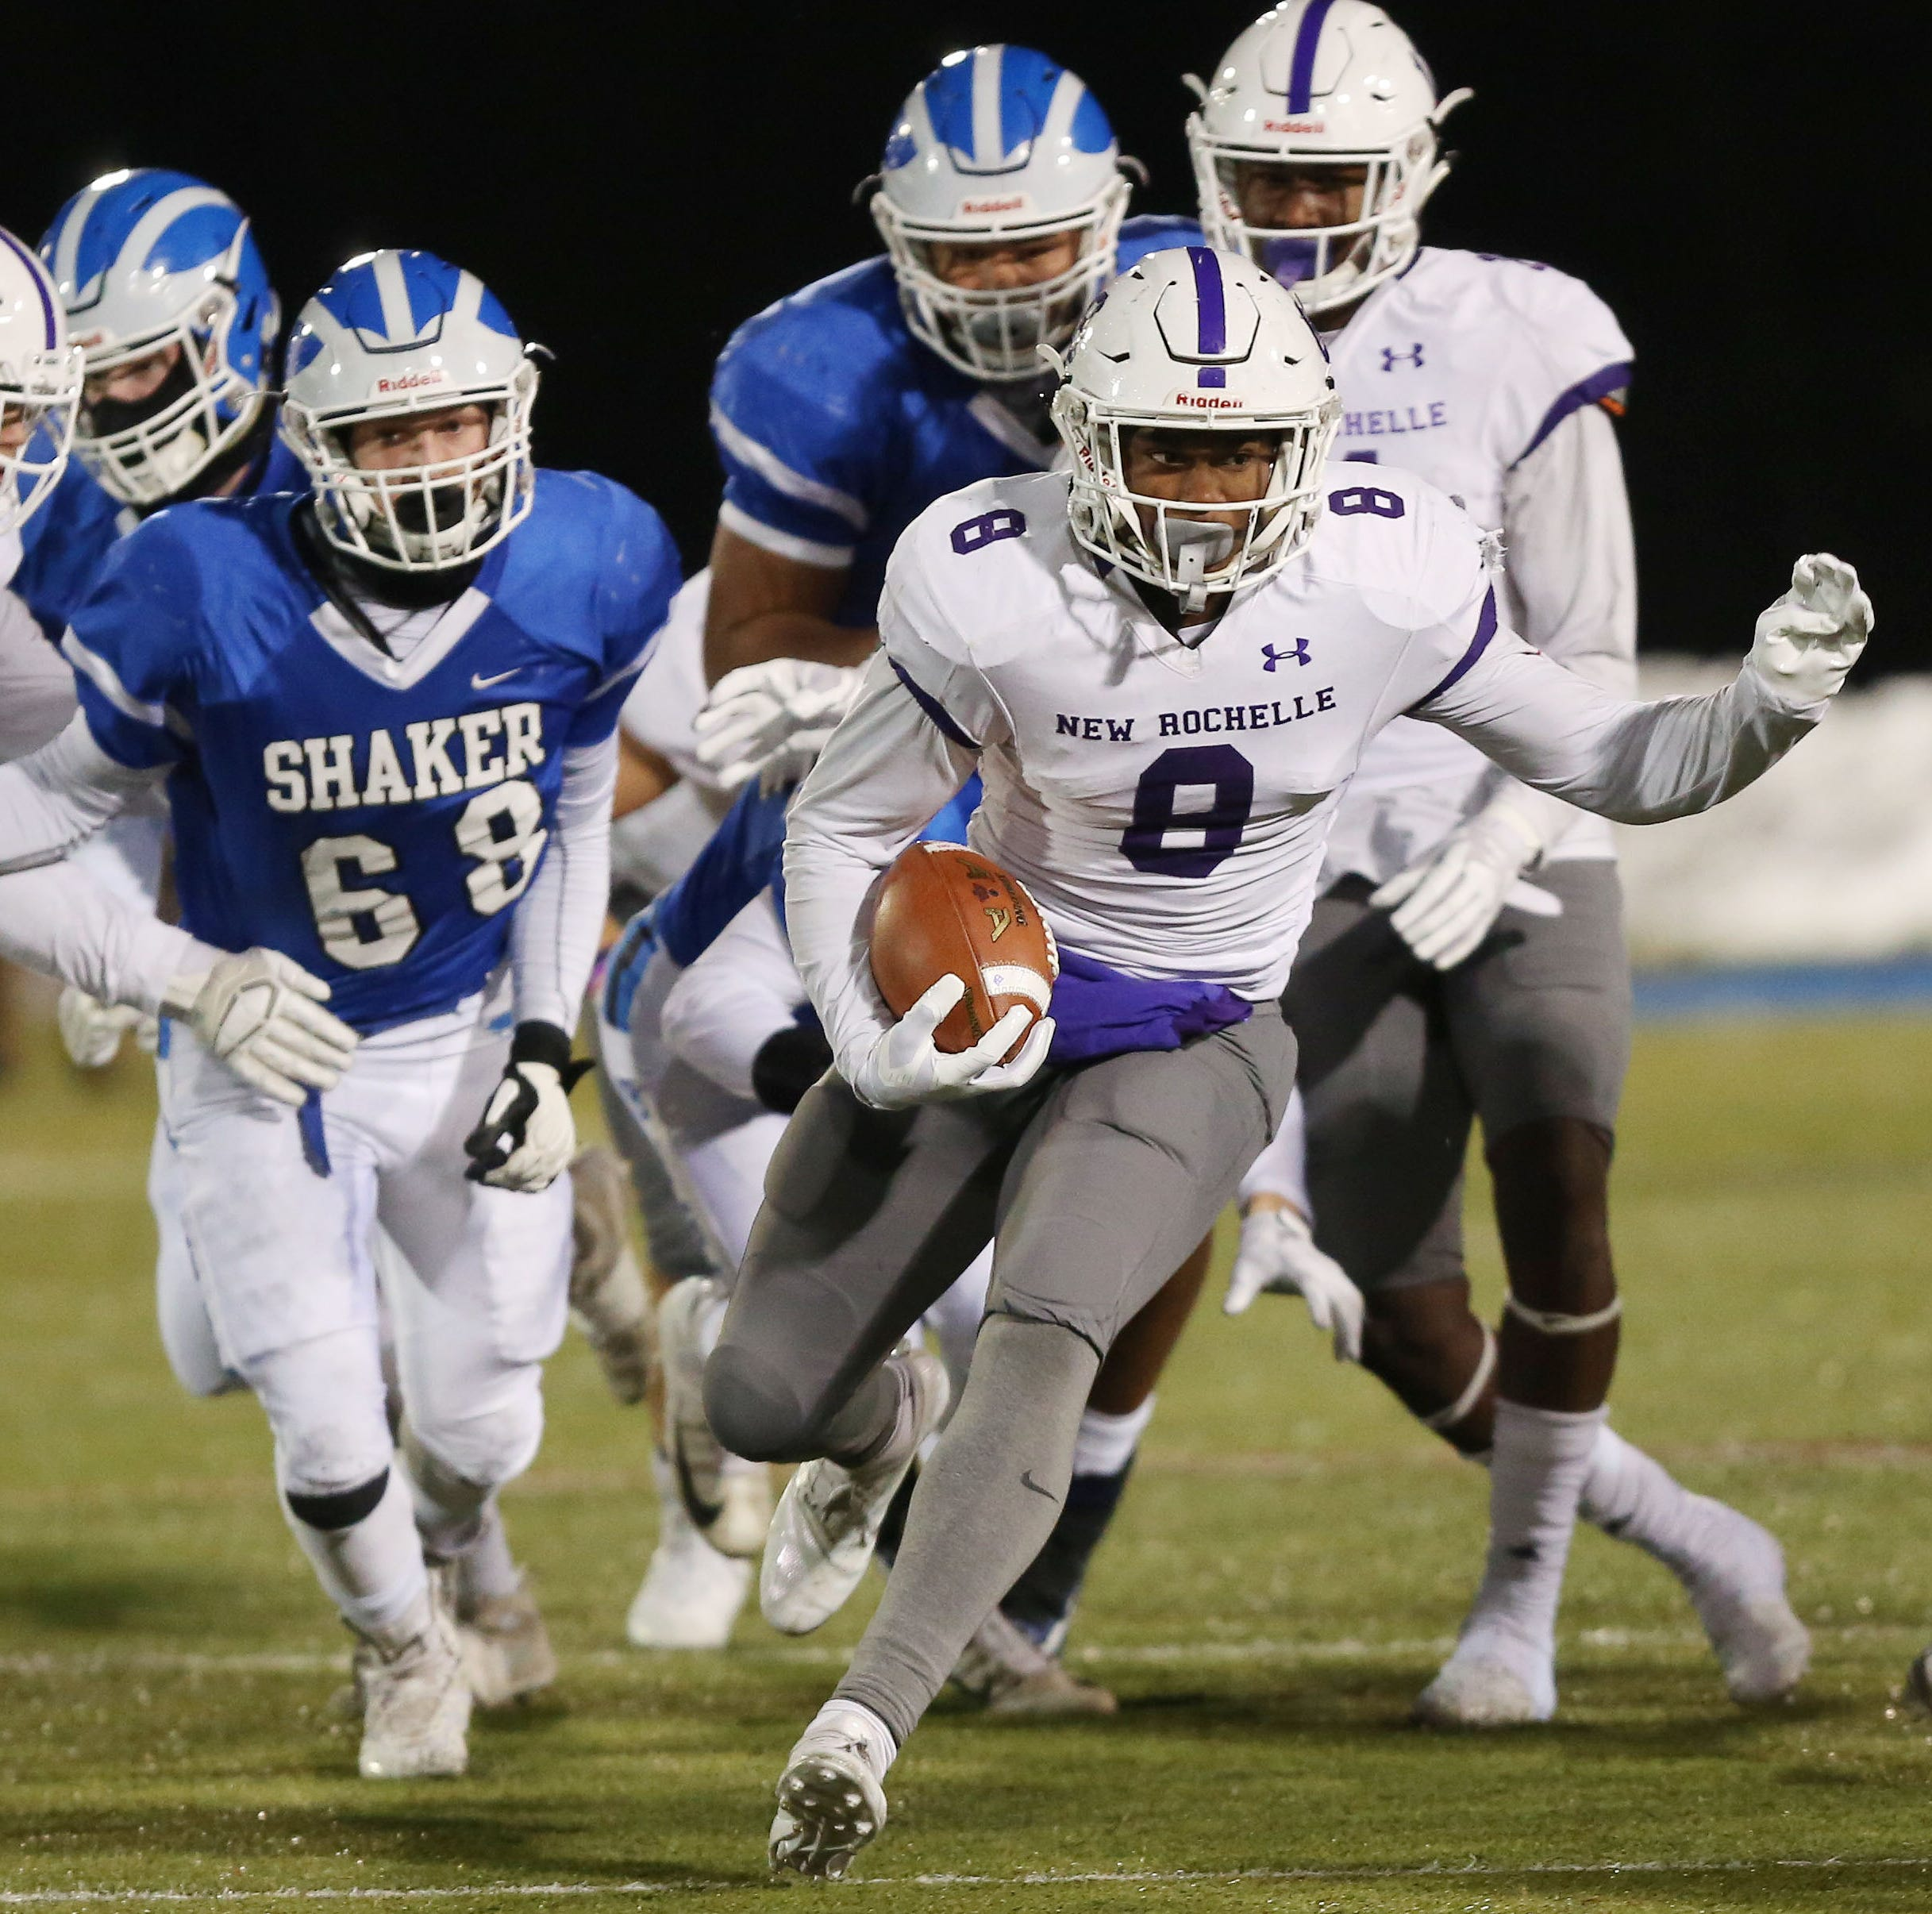 Football: New Rochelle's Jordan Forrest tabbed Player of the Year; other all-state picks